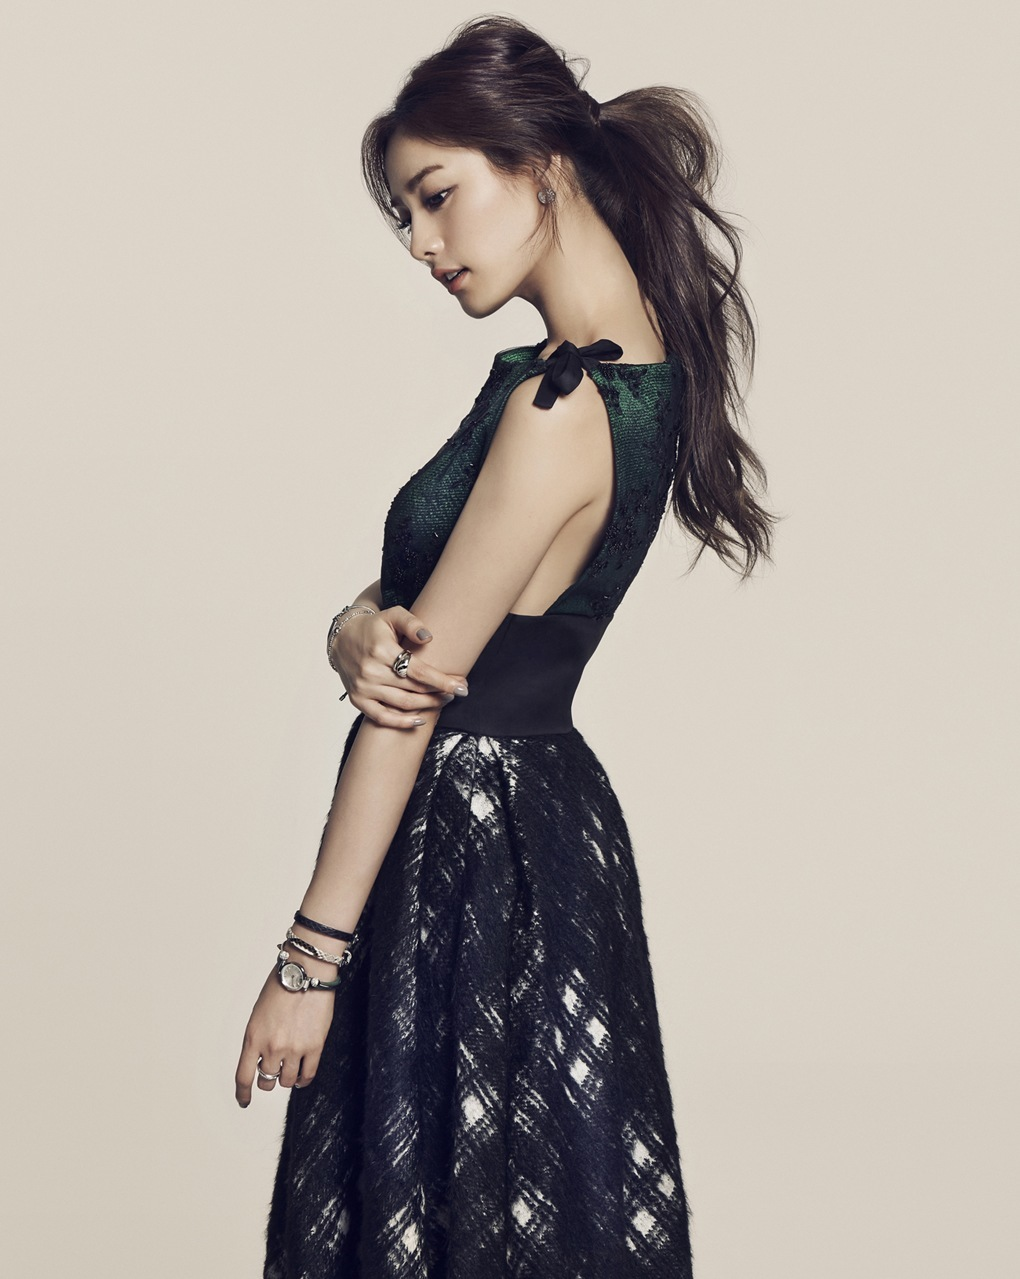 Nana for Marie Claire